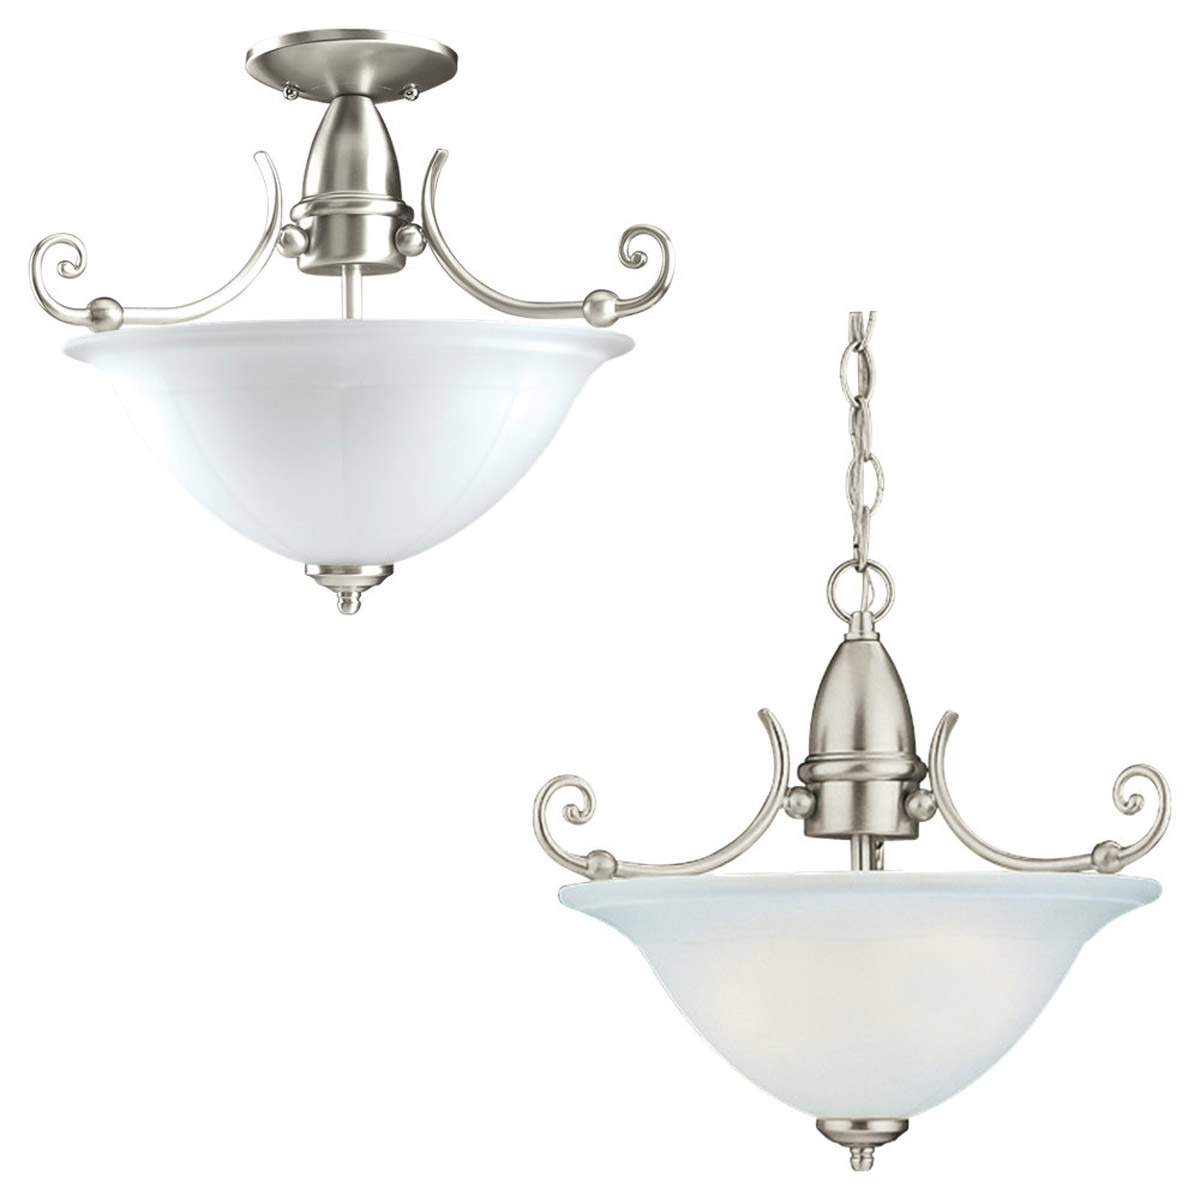 Sea Gull Lighting Canterbury 1 Light Convertible Semi-Flush in Brushed Nickel 59050BLE-962